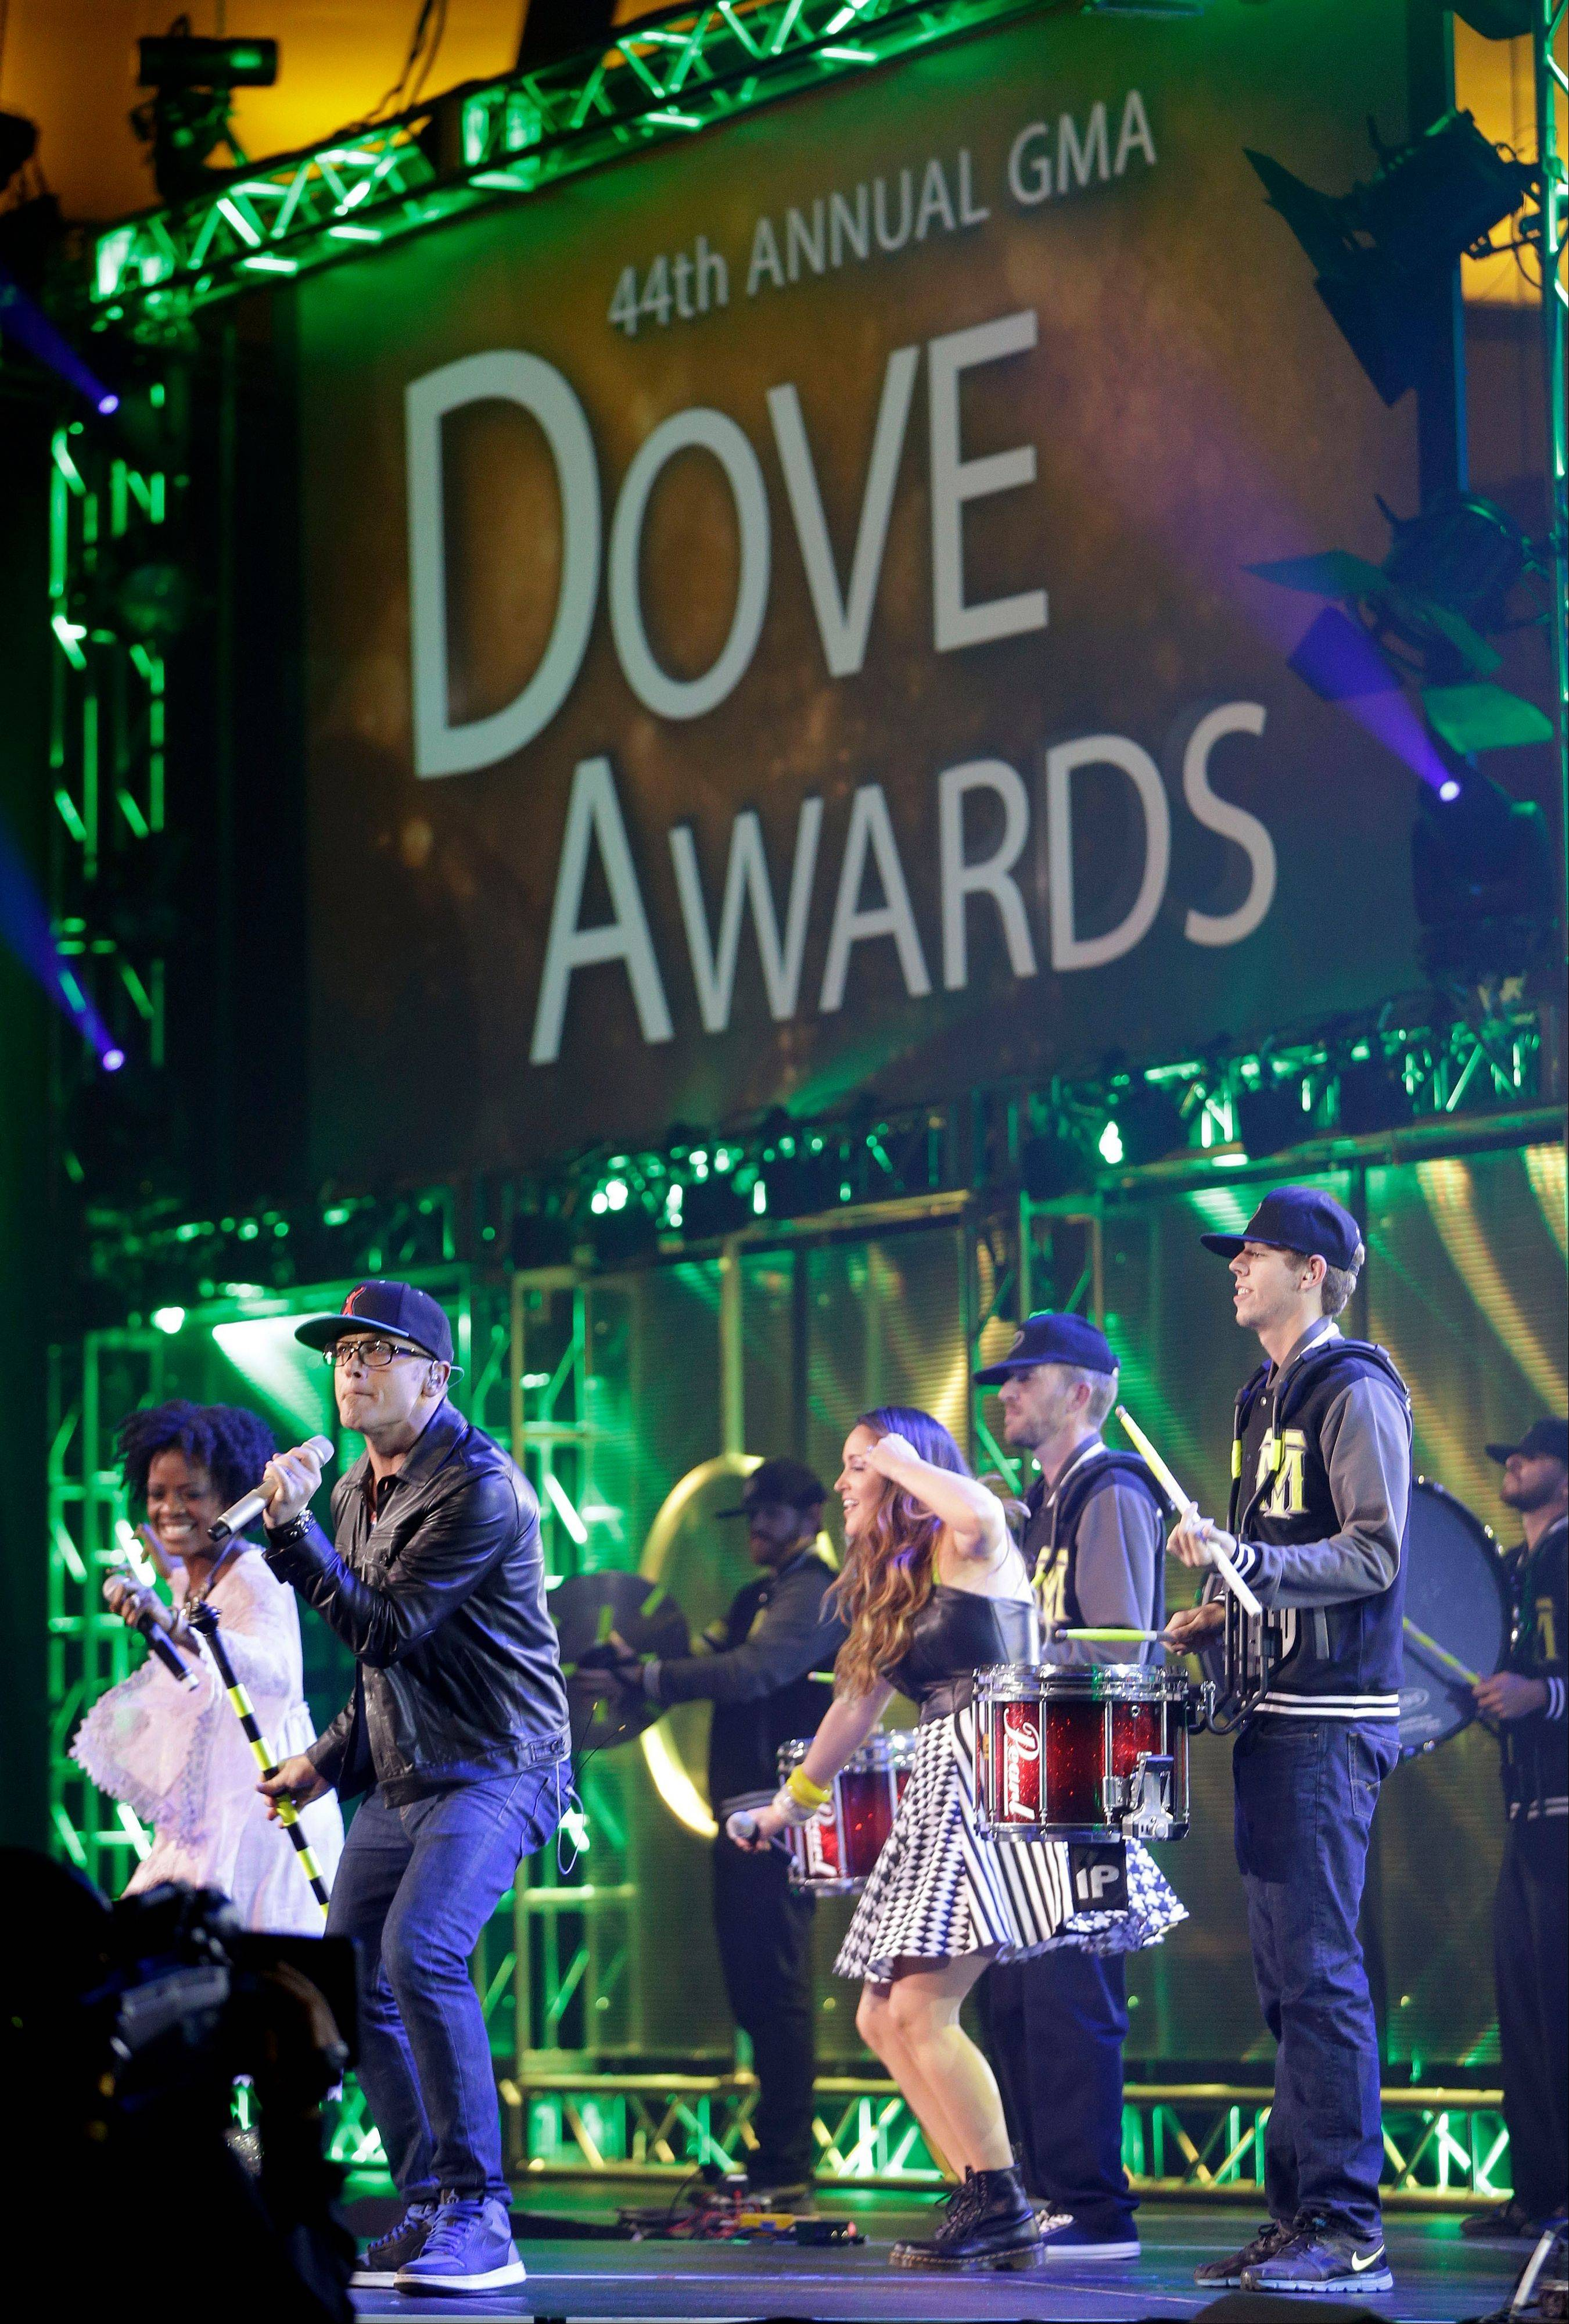 TobyMac, front left, performs at the Dove Awards on Tuesday in Nashville, Tenn. He was later named artist of the year.